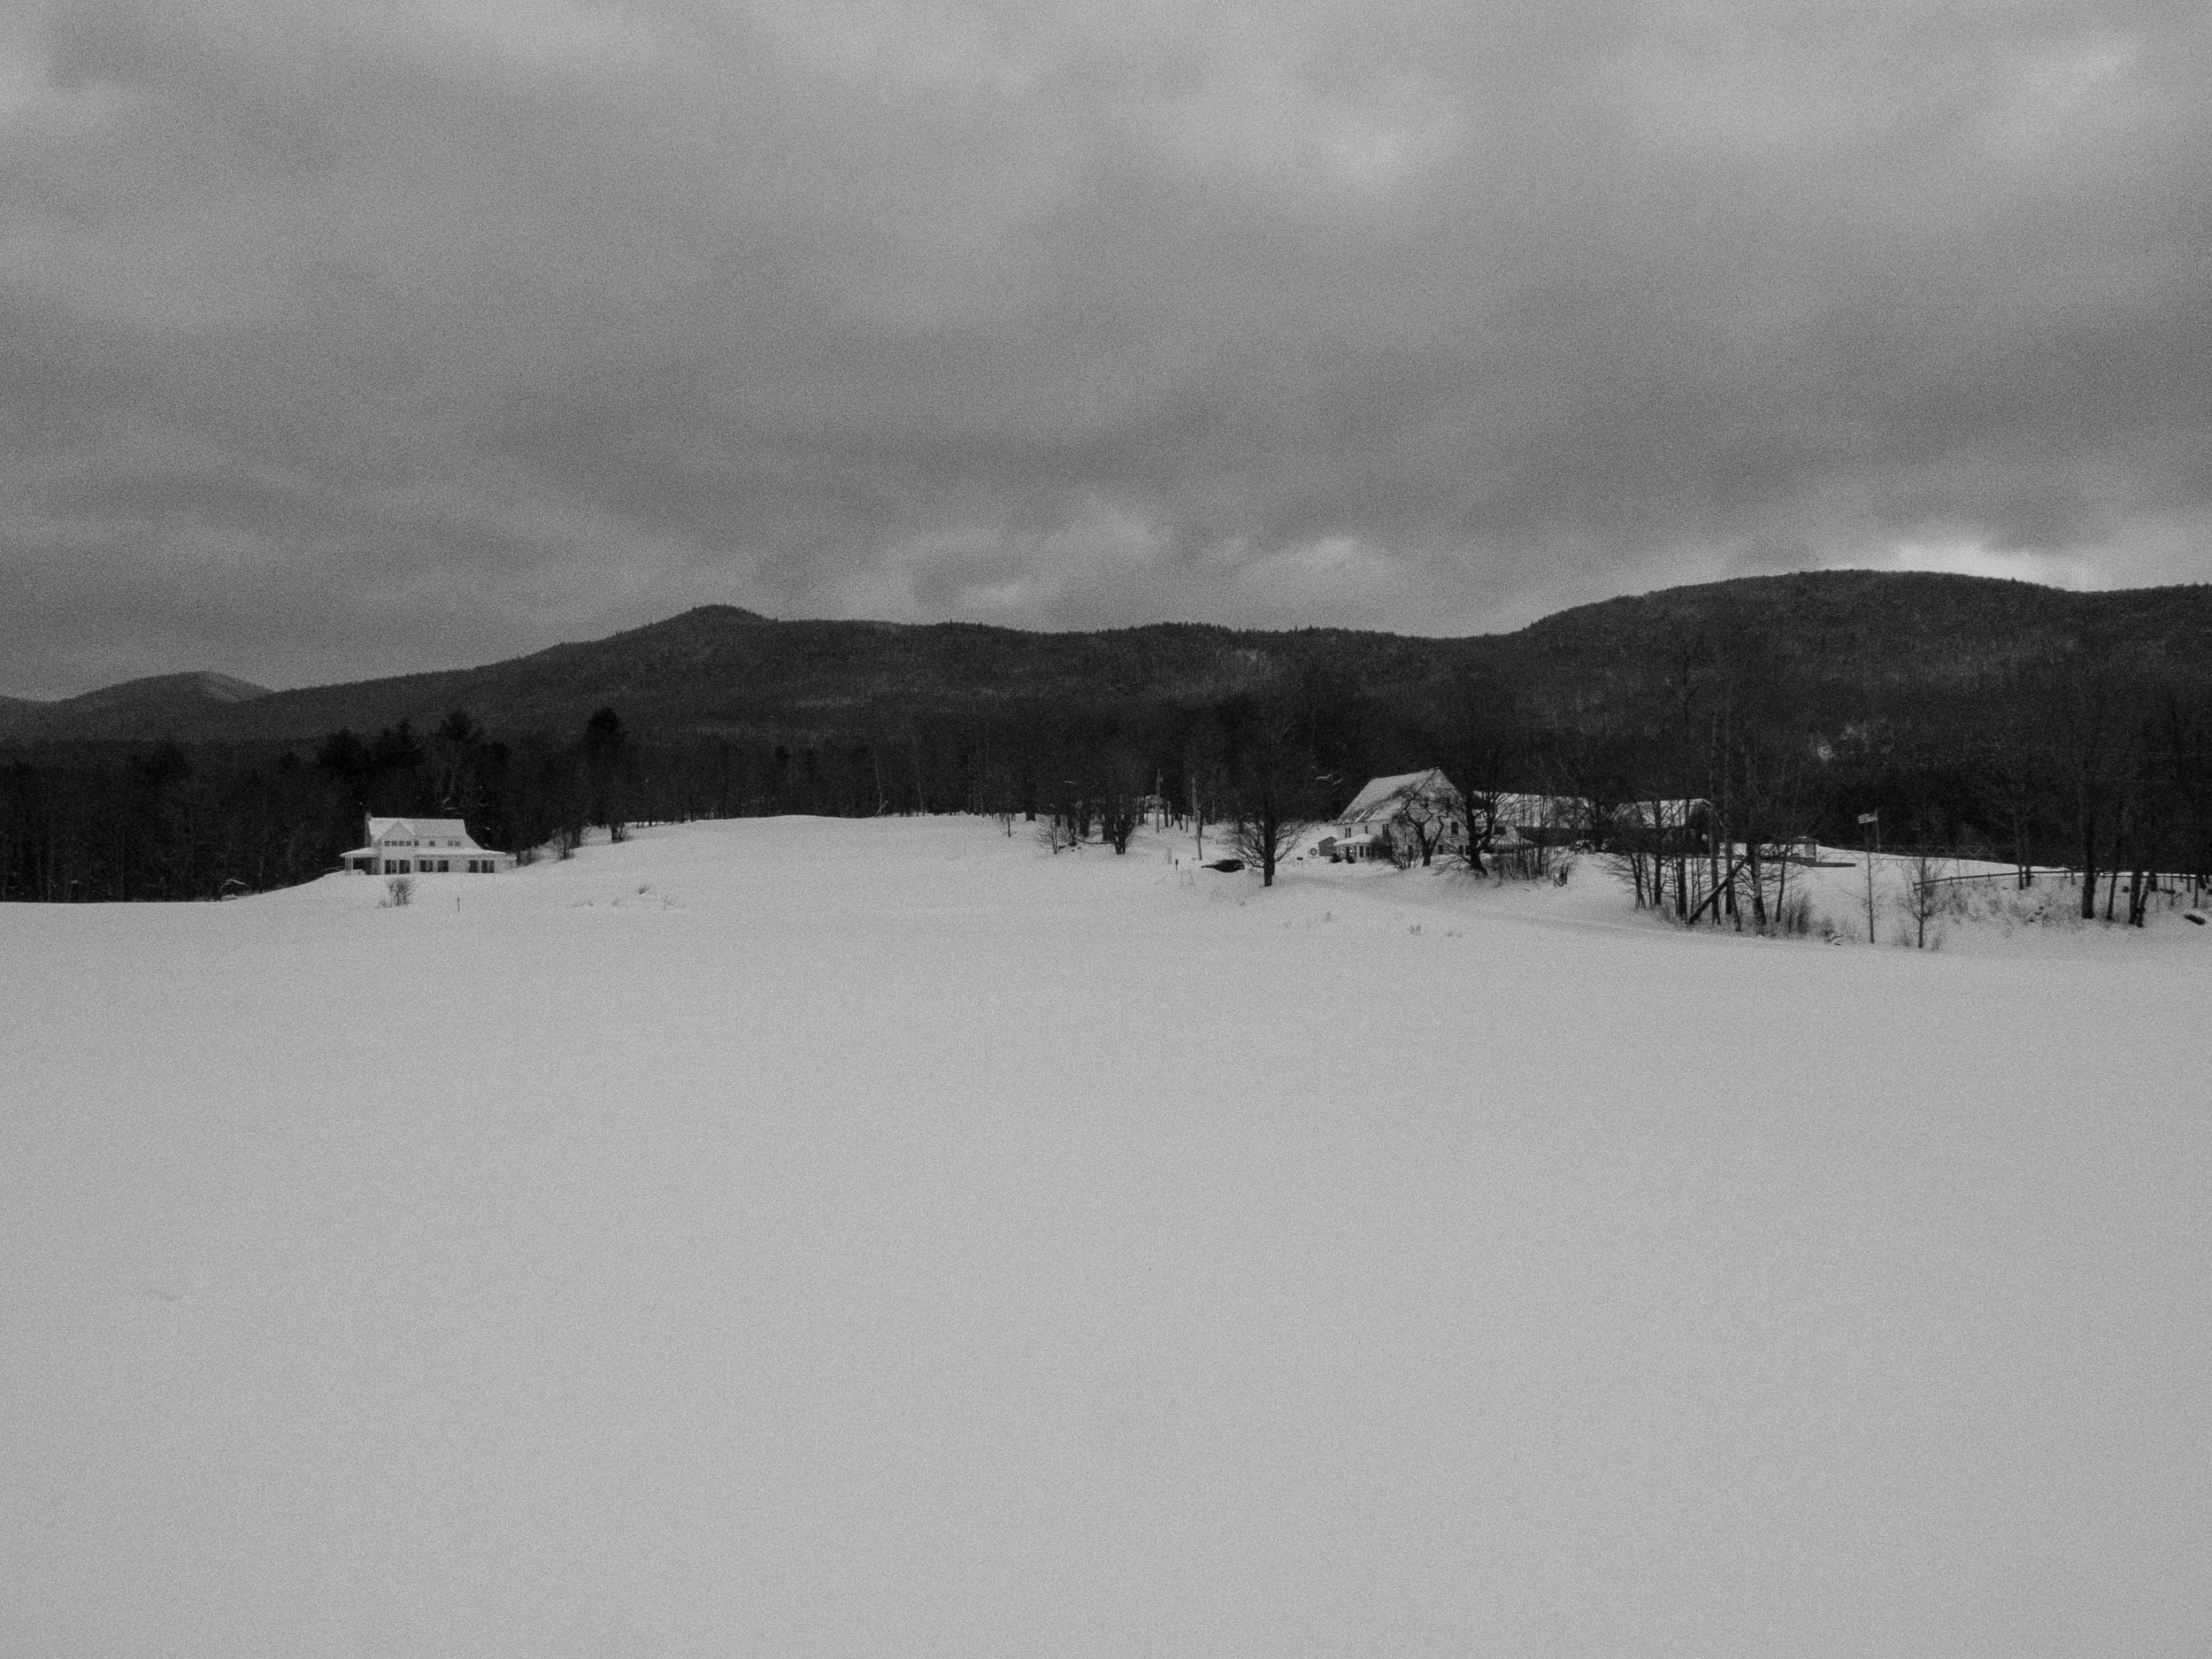 Looking north from Harvey's farm. I believe that's Braintree Mountain in the background. I'm sure someone will correct me if I'm wrong.